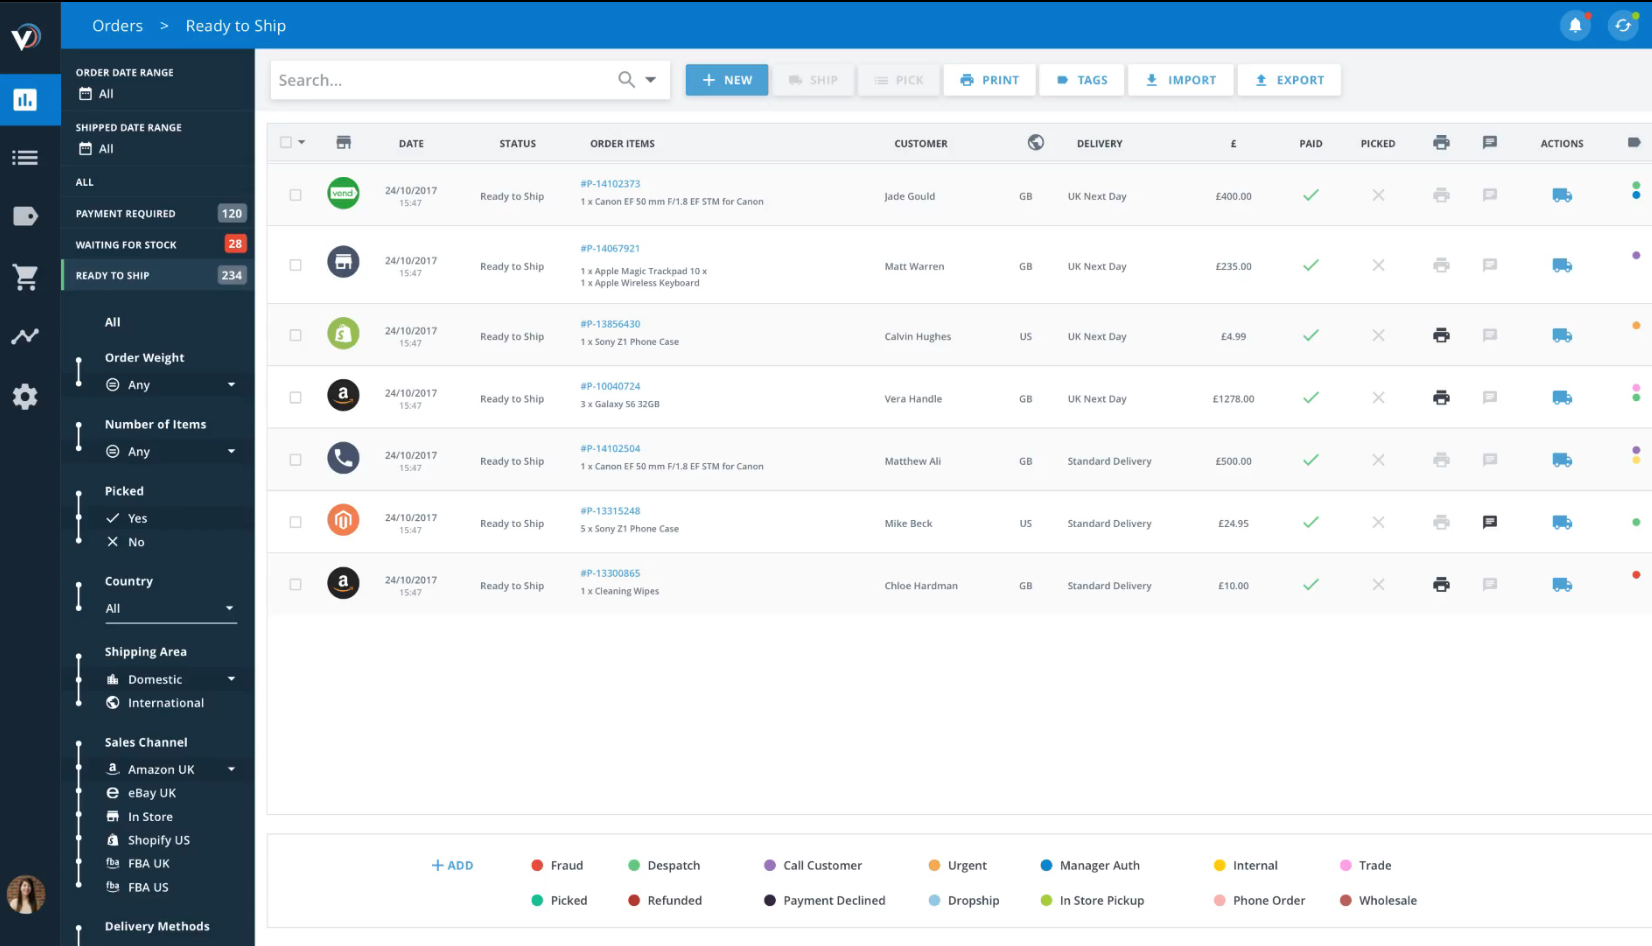 Veeqo - Orders page